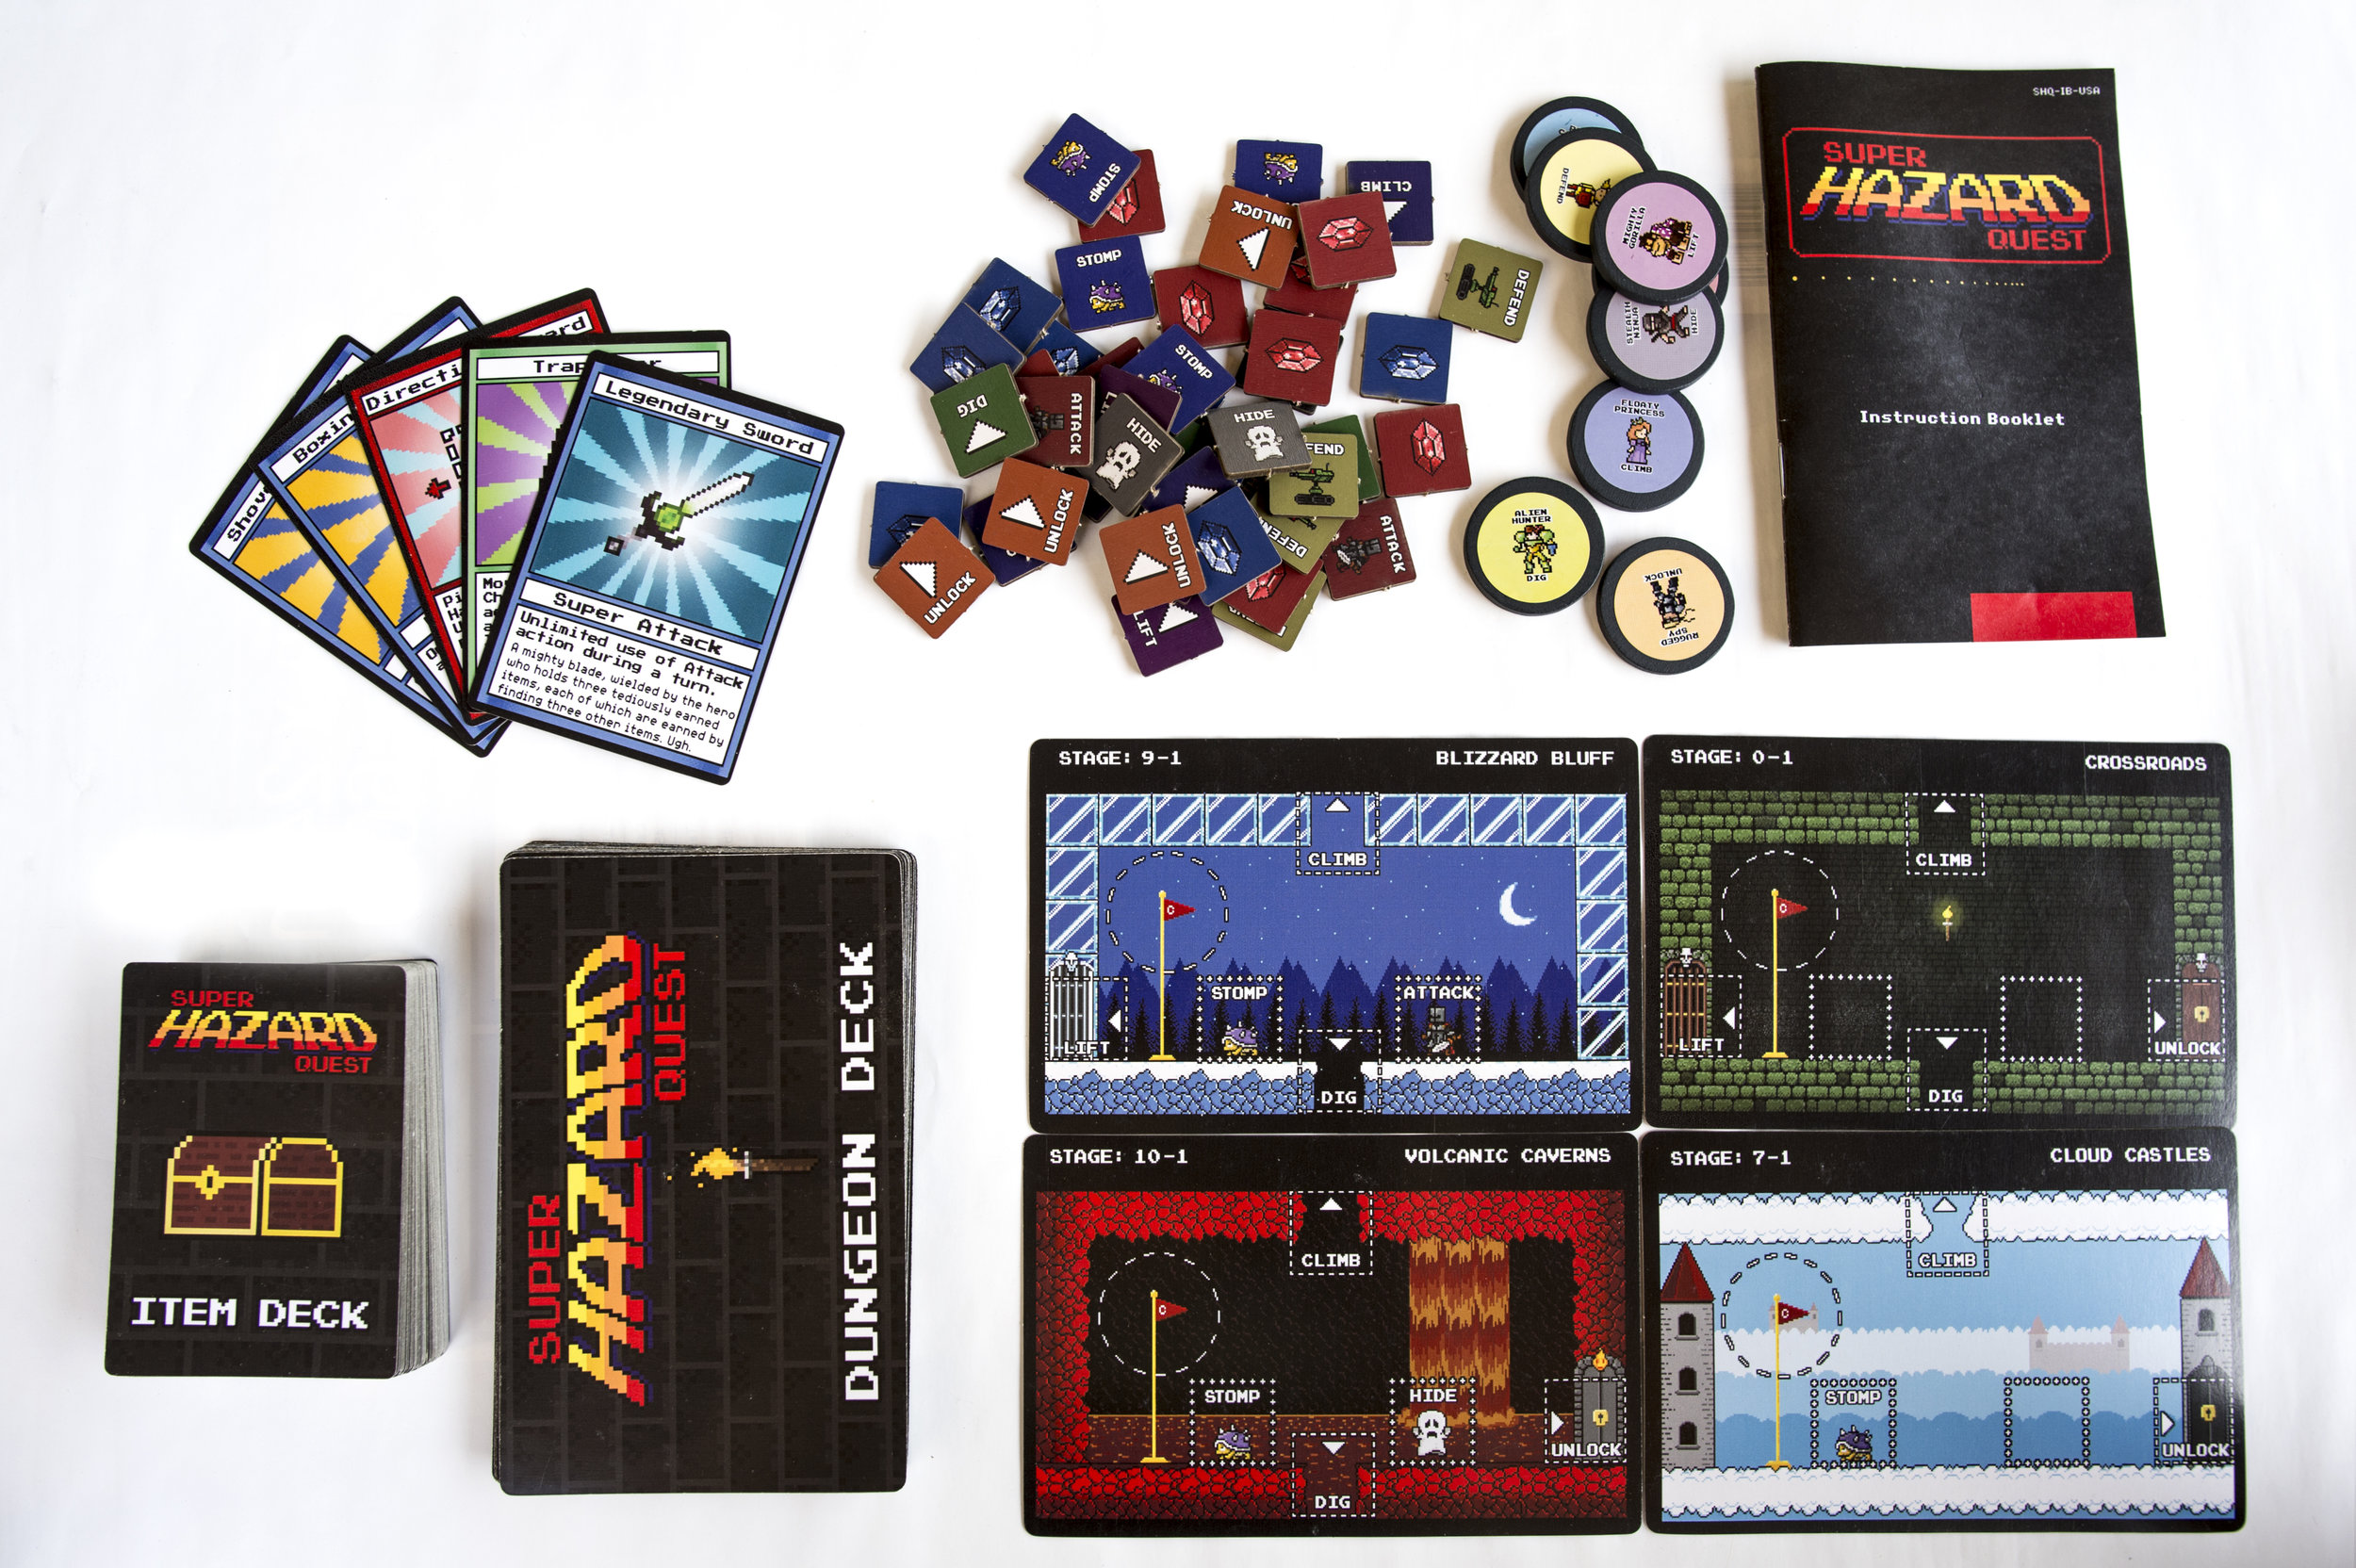 GAME INCLUDES:  54 Item Cards 26 Dungeon Cards 1 Instructional Cards 8 Character Tokens 16 Crystal Shards 1 Instructional Manual